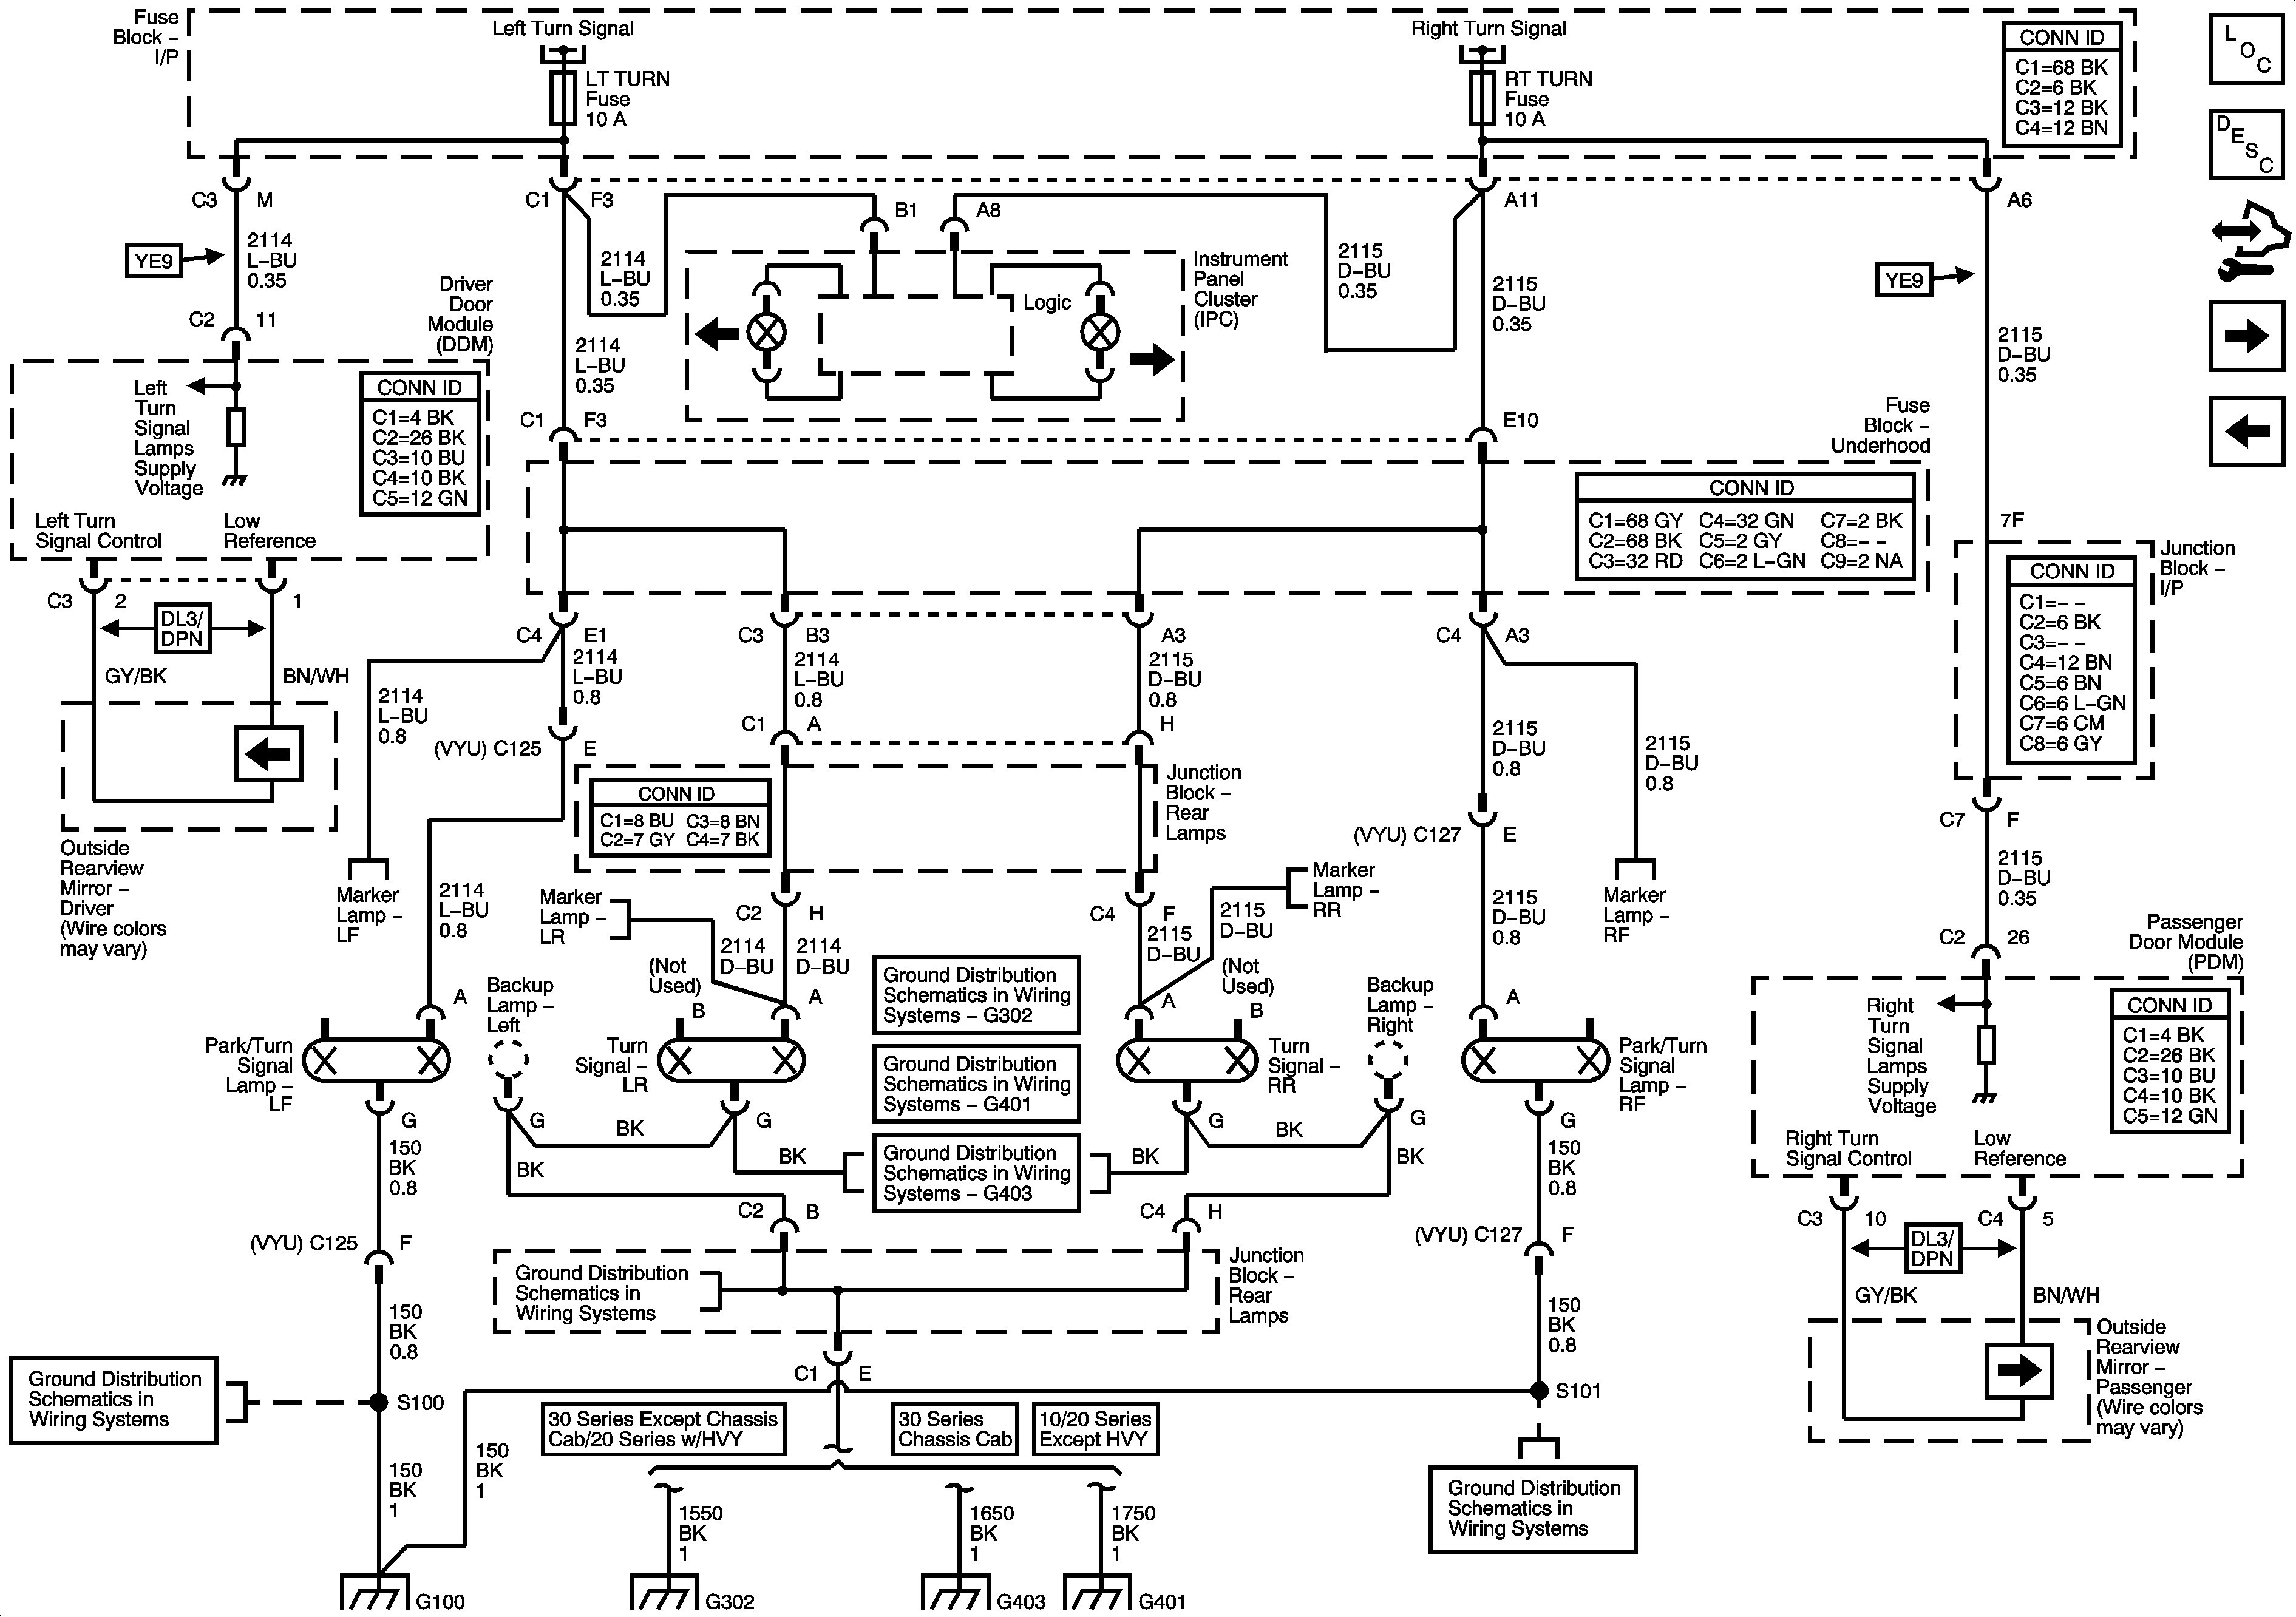 5 3 Vortec Engine Diagram 2 Awesome 5 3 Wiring Harness Diagram Diagram Of 5 3 Vortec Engine Diagram 2